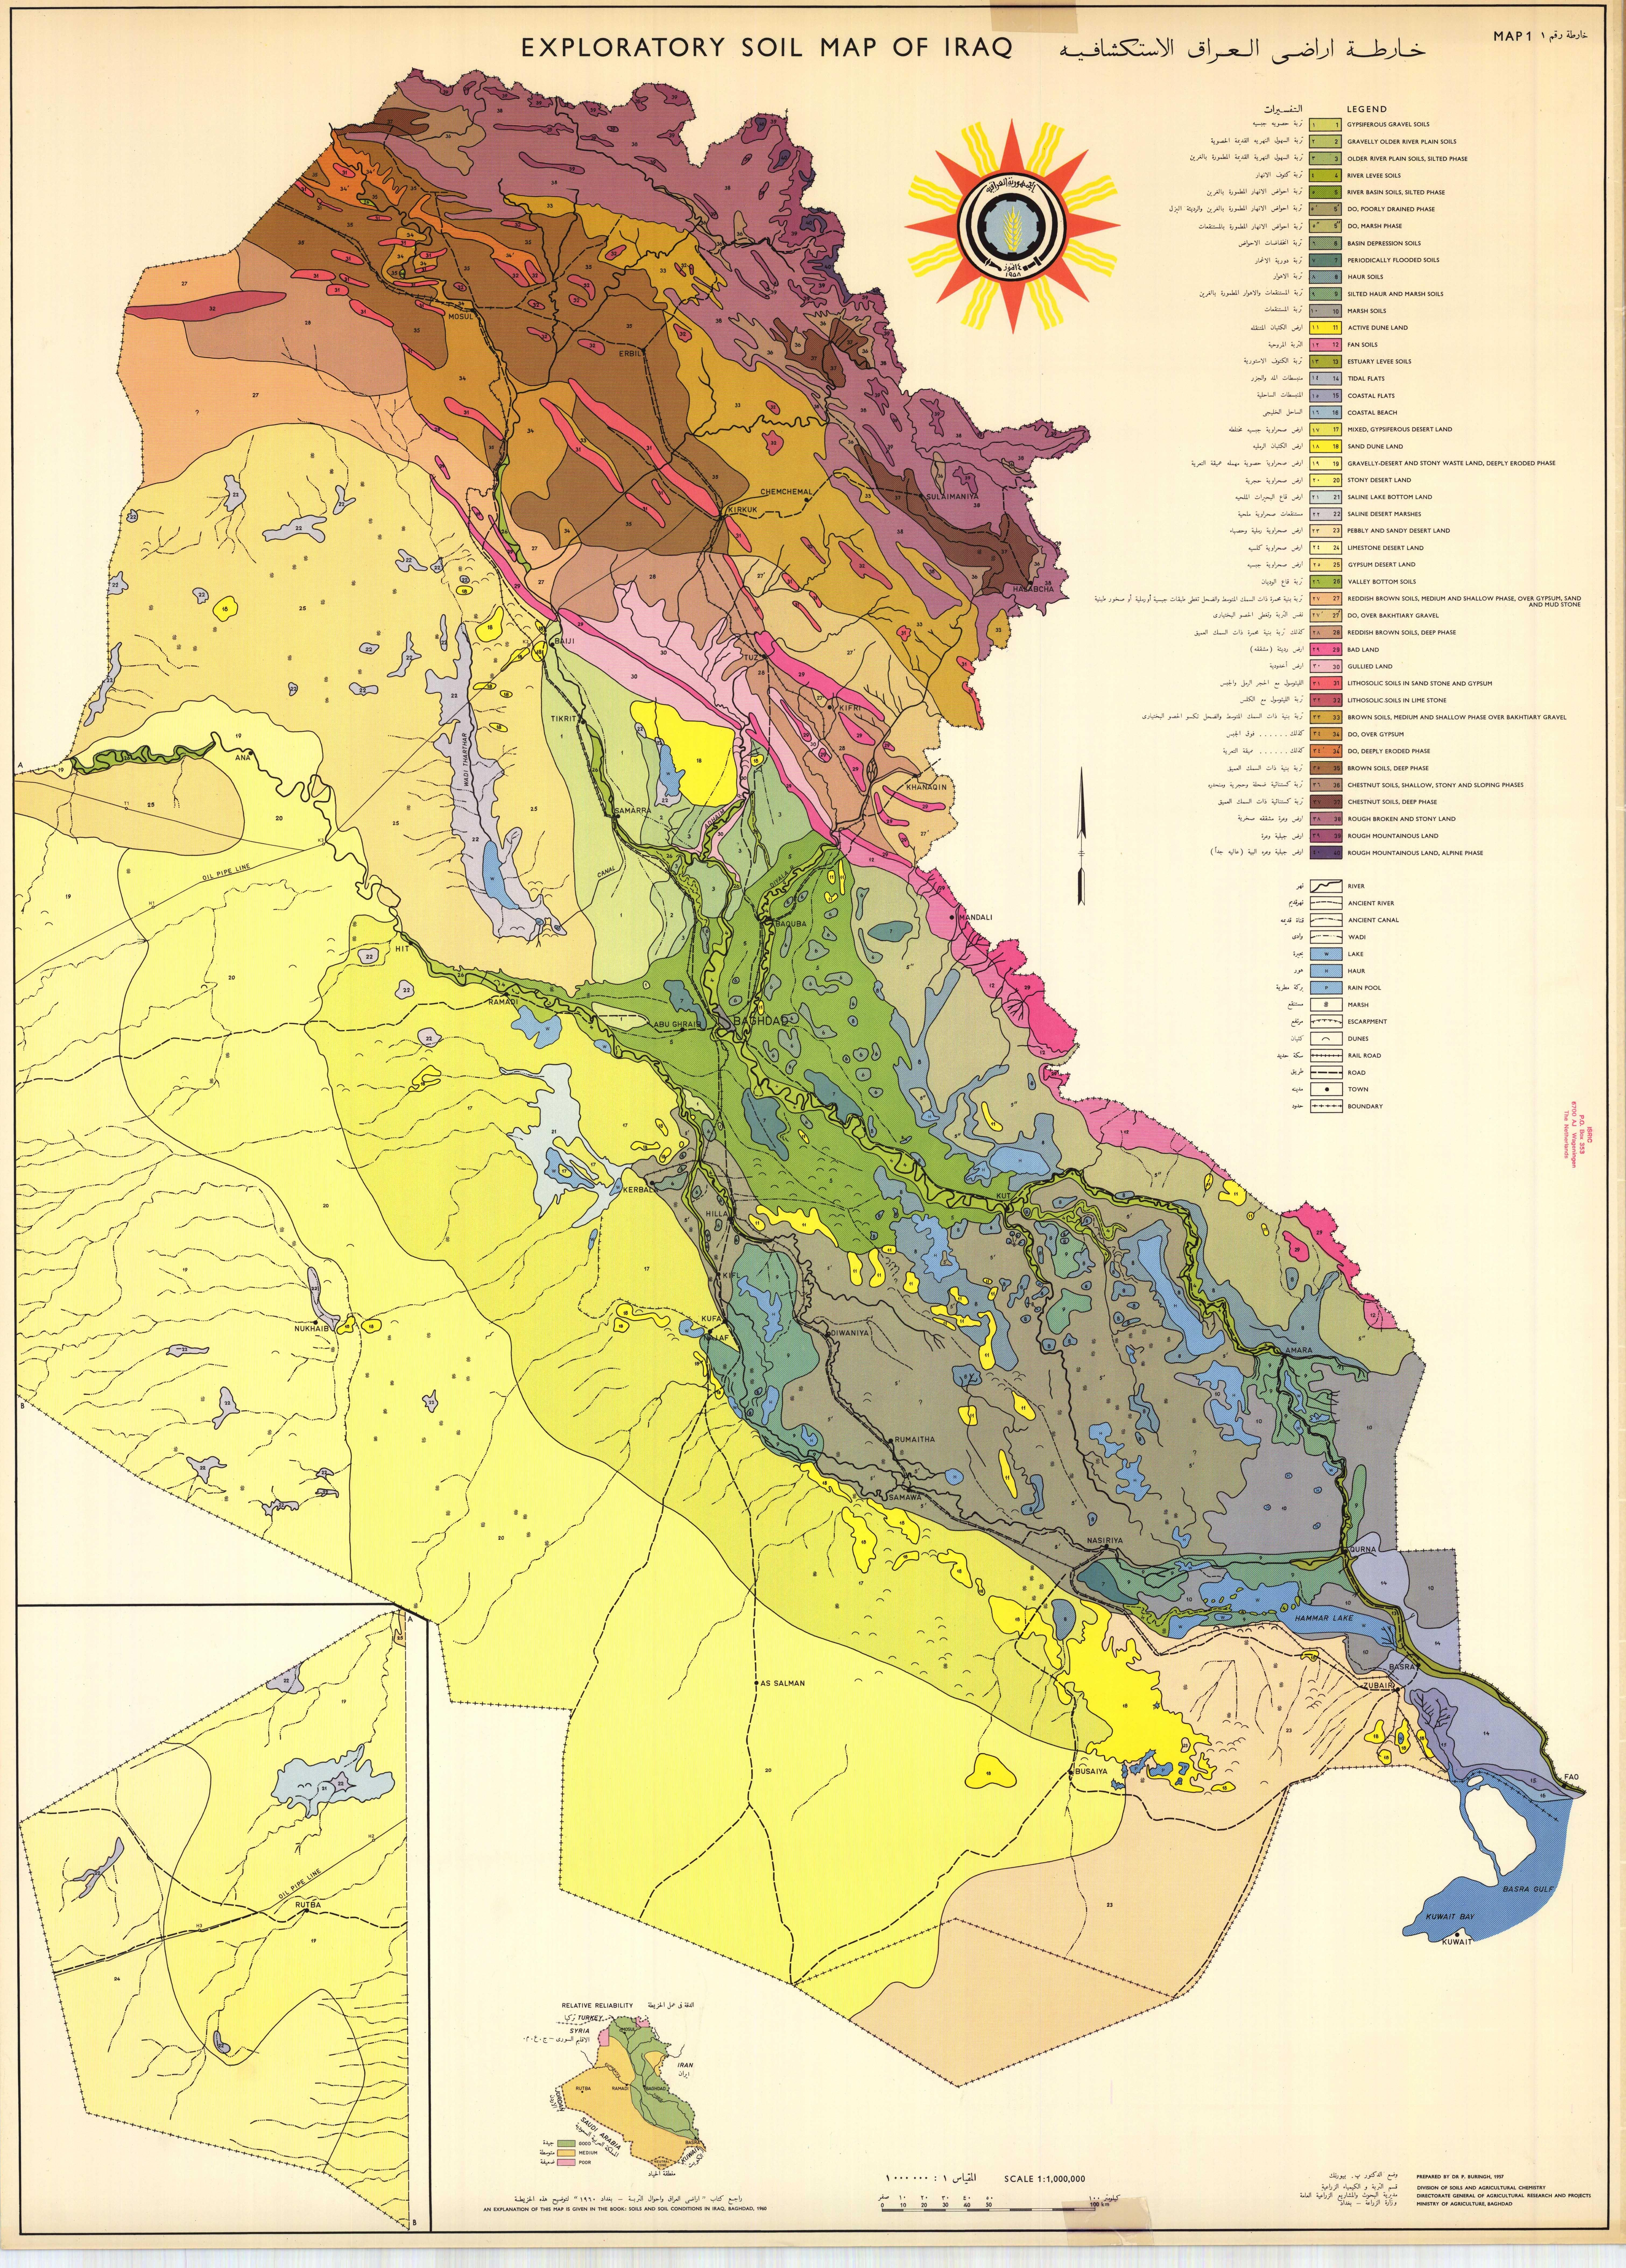 Soil map of iraq from the 50s maps pinterest soil map of iraq from the 50s gumiabroncs Gallery